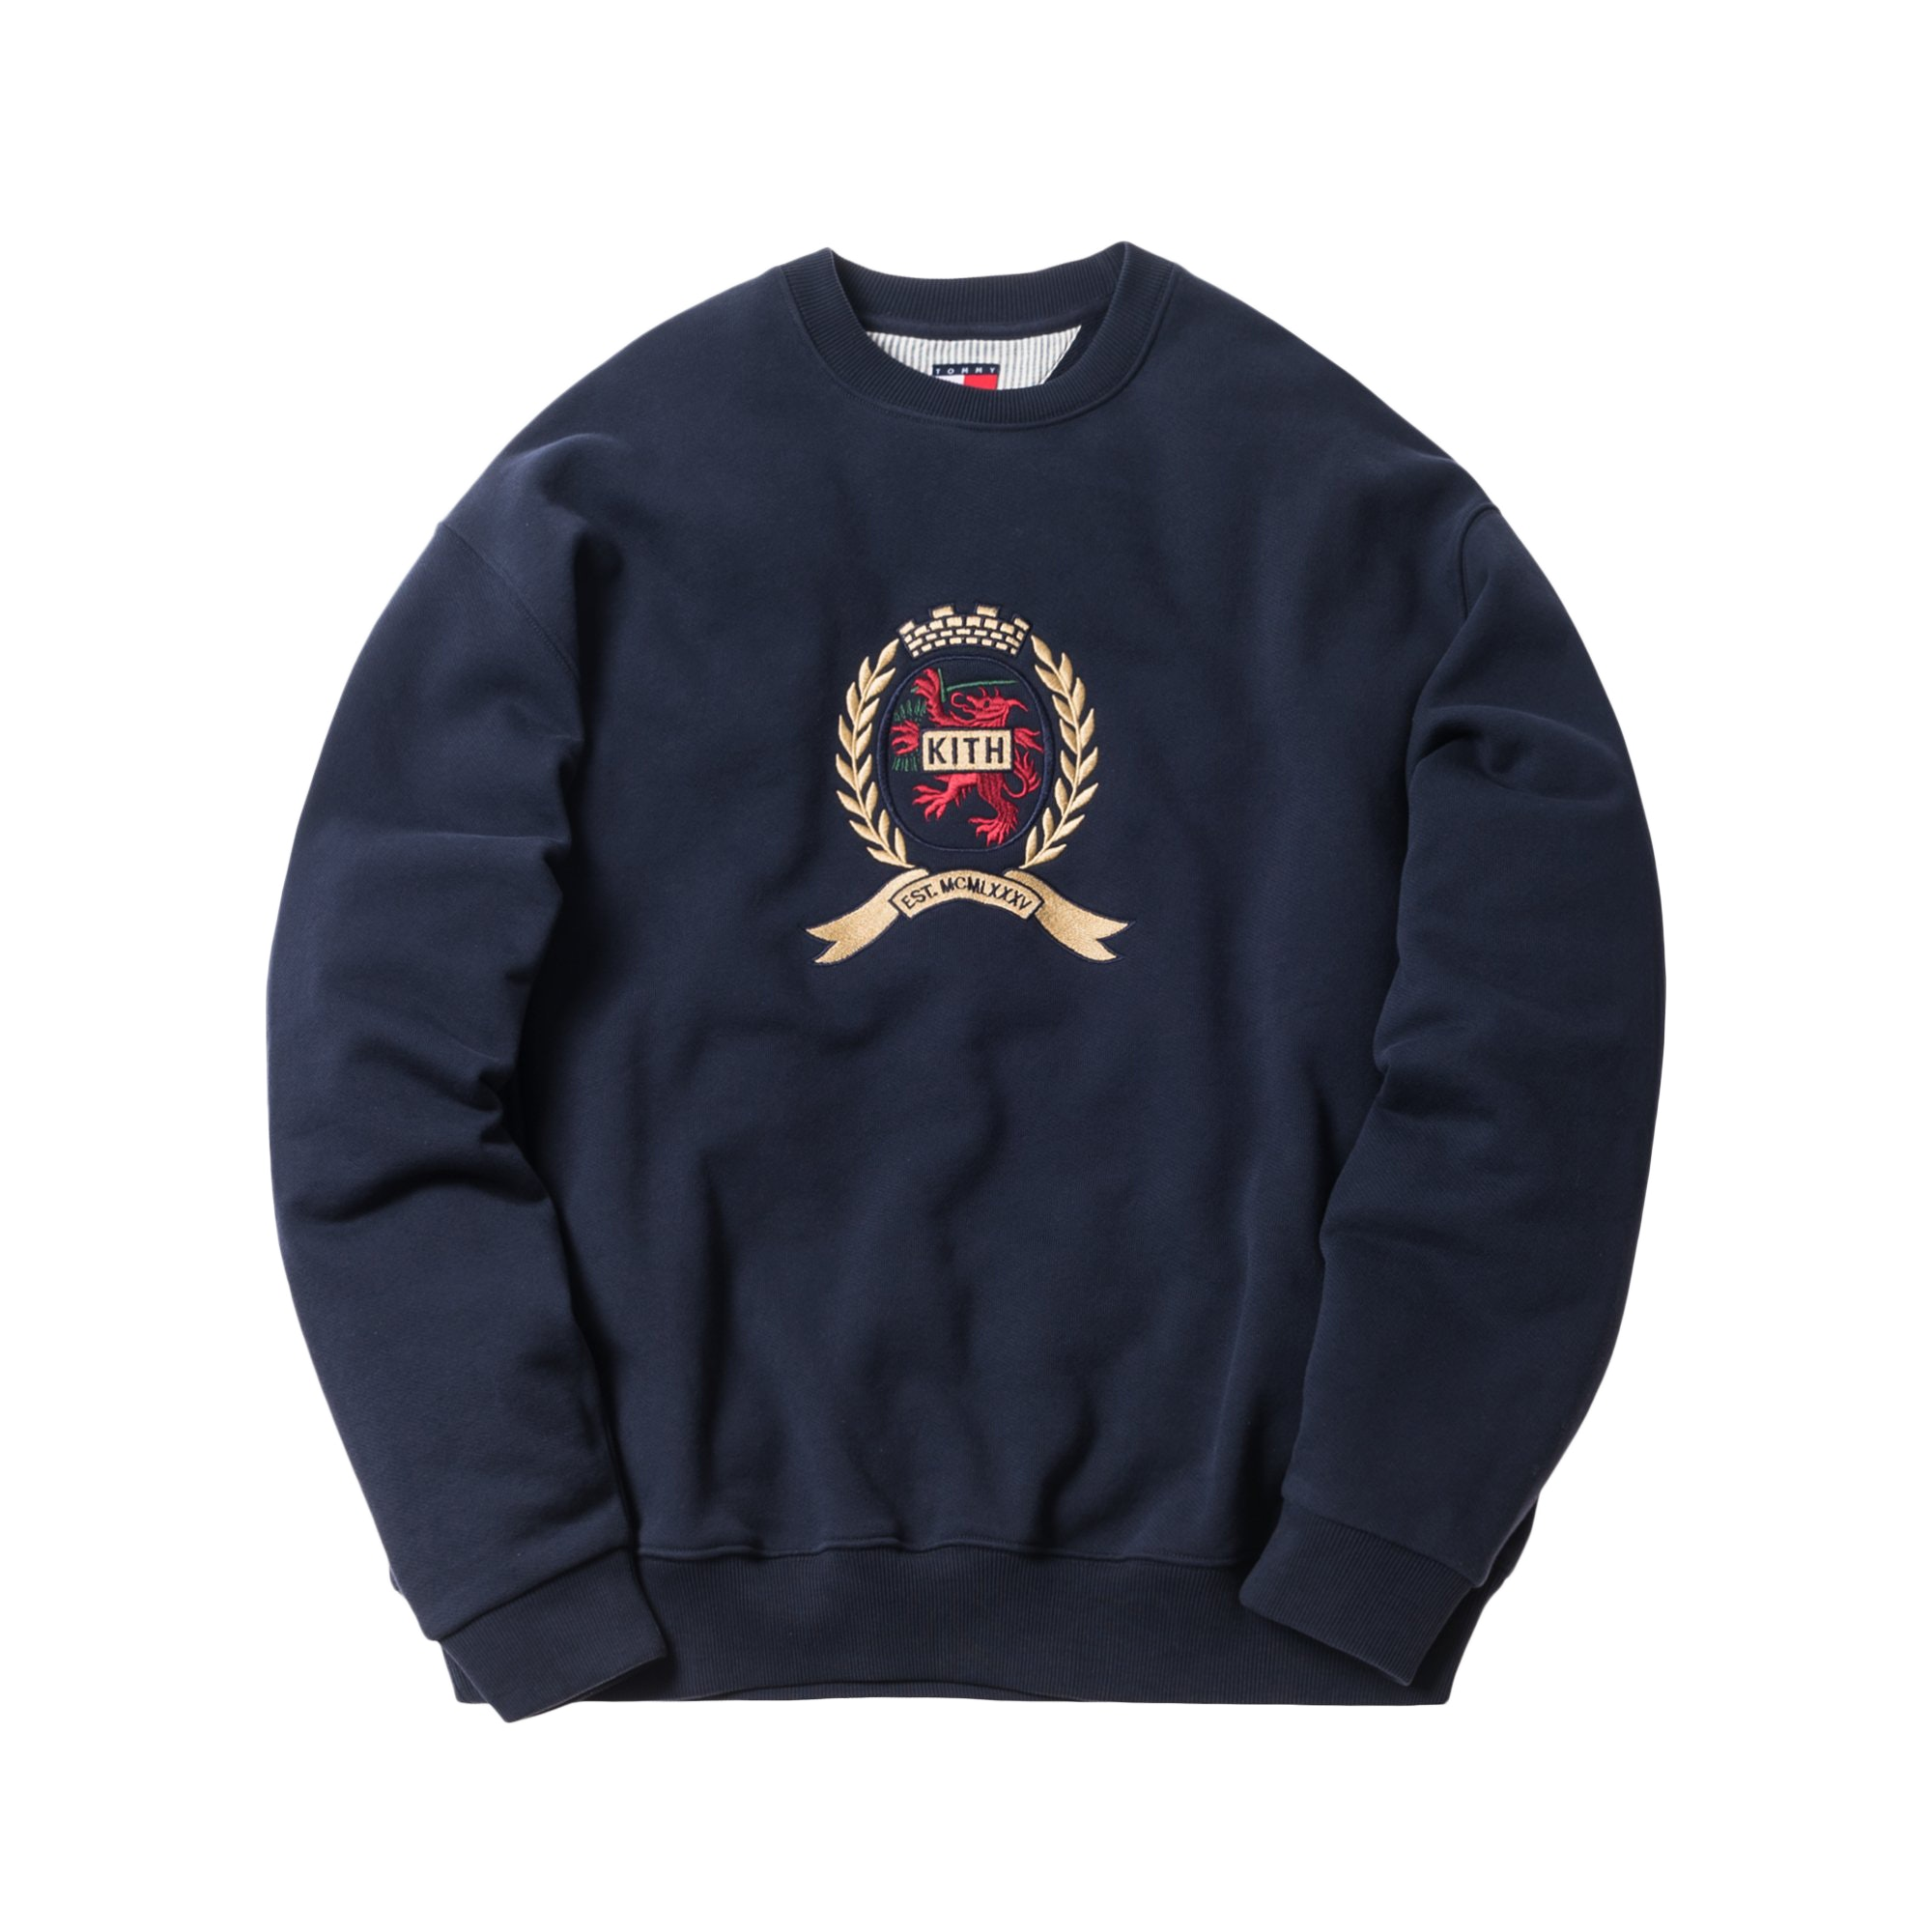 Kith X Tommy Hilfiger Crest Crewneck Navy by Stock X